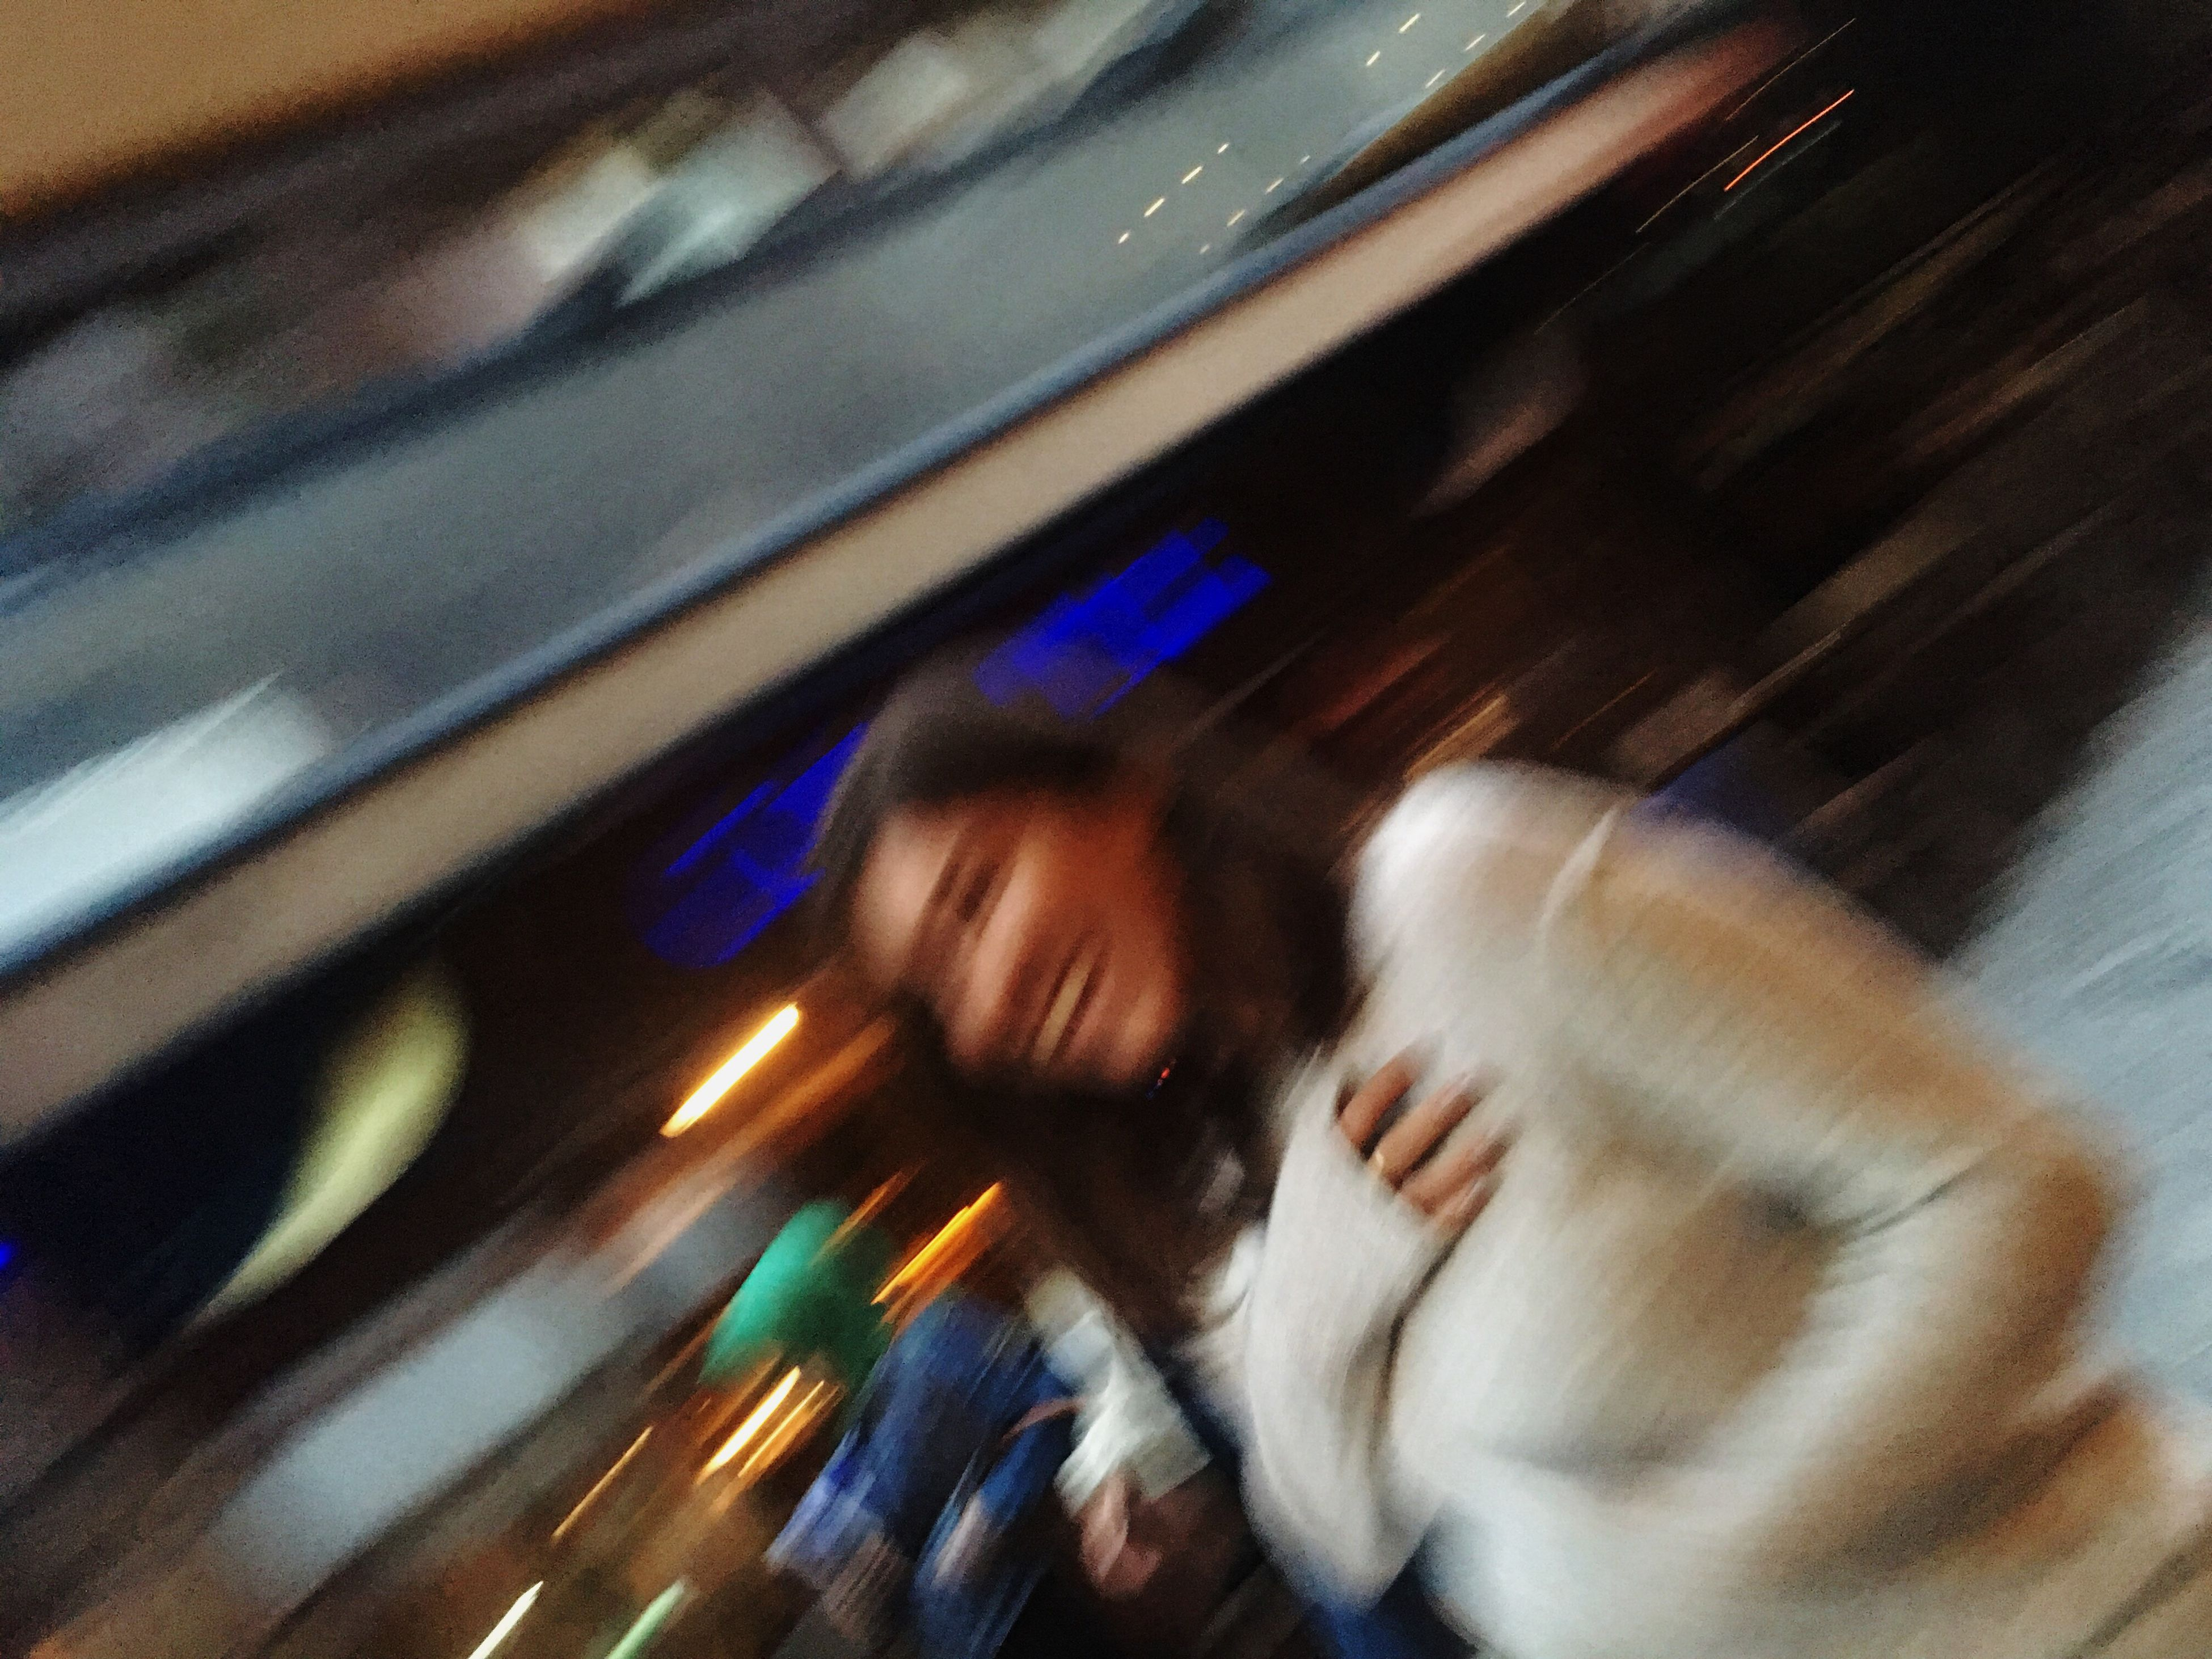 lifestyles, indoors, window, leisure activity, blurred motion, reflection, illuminated, person, looking